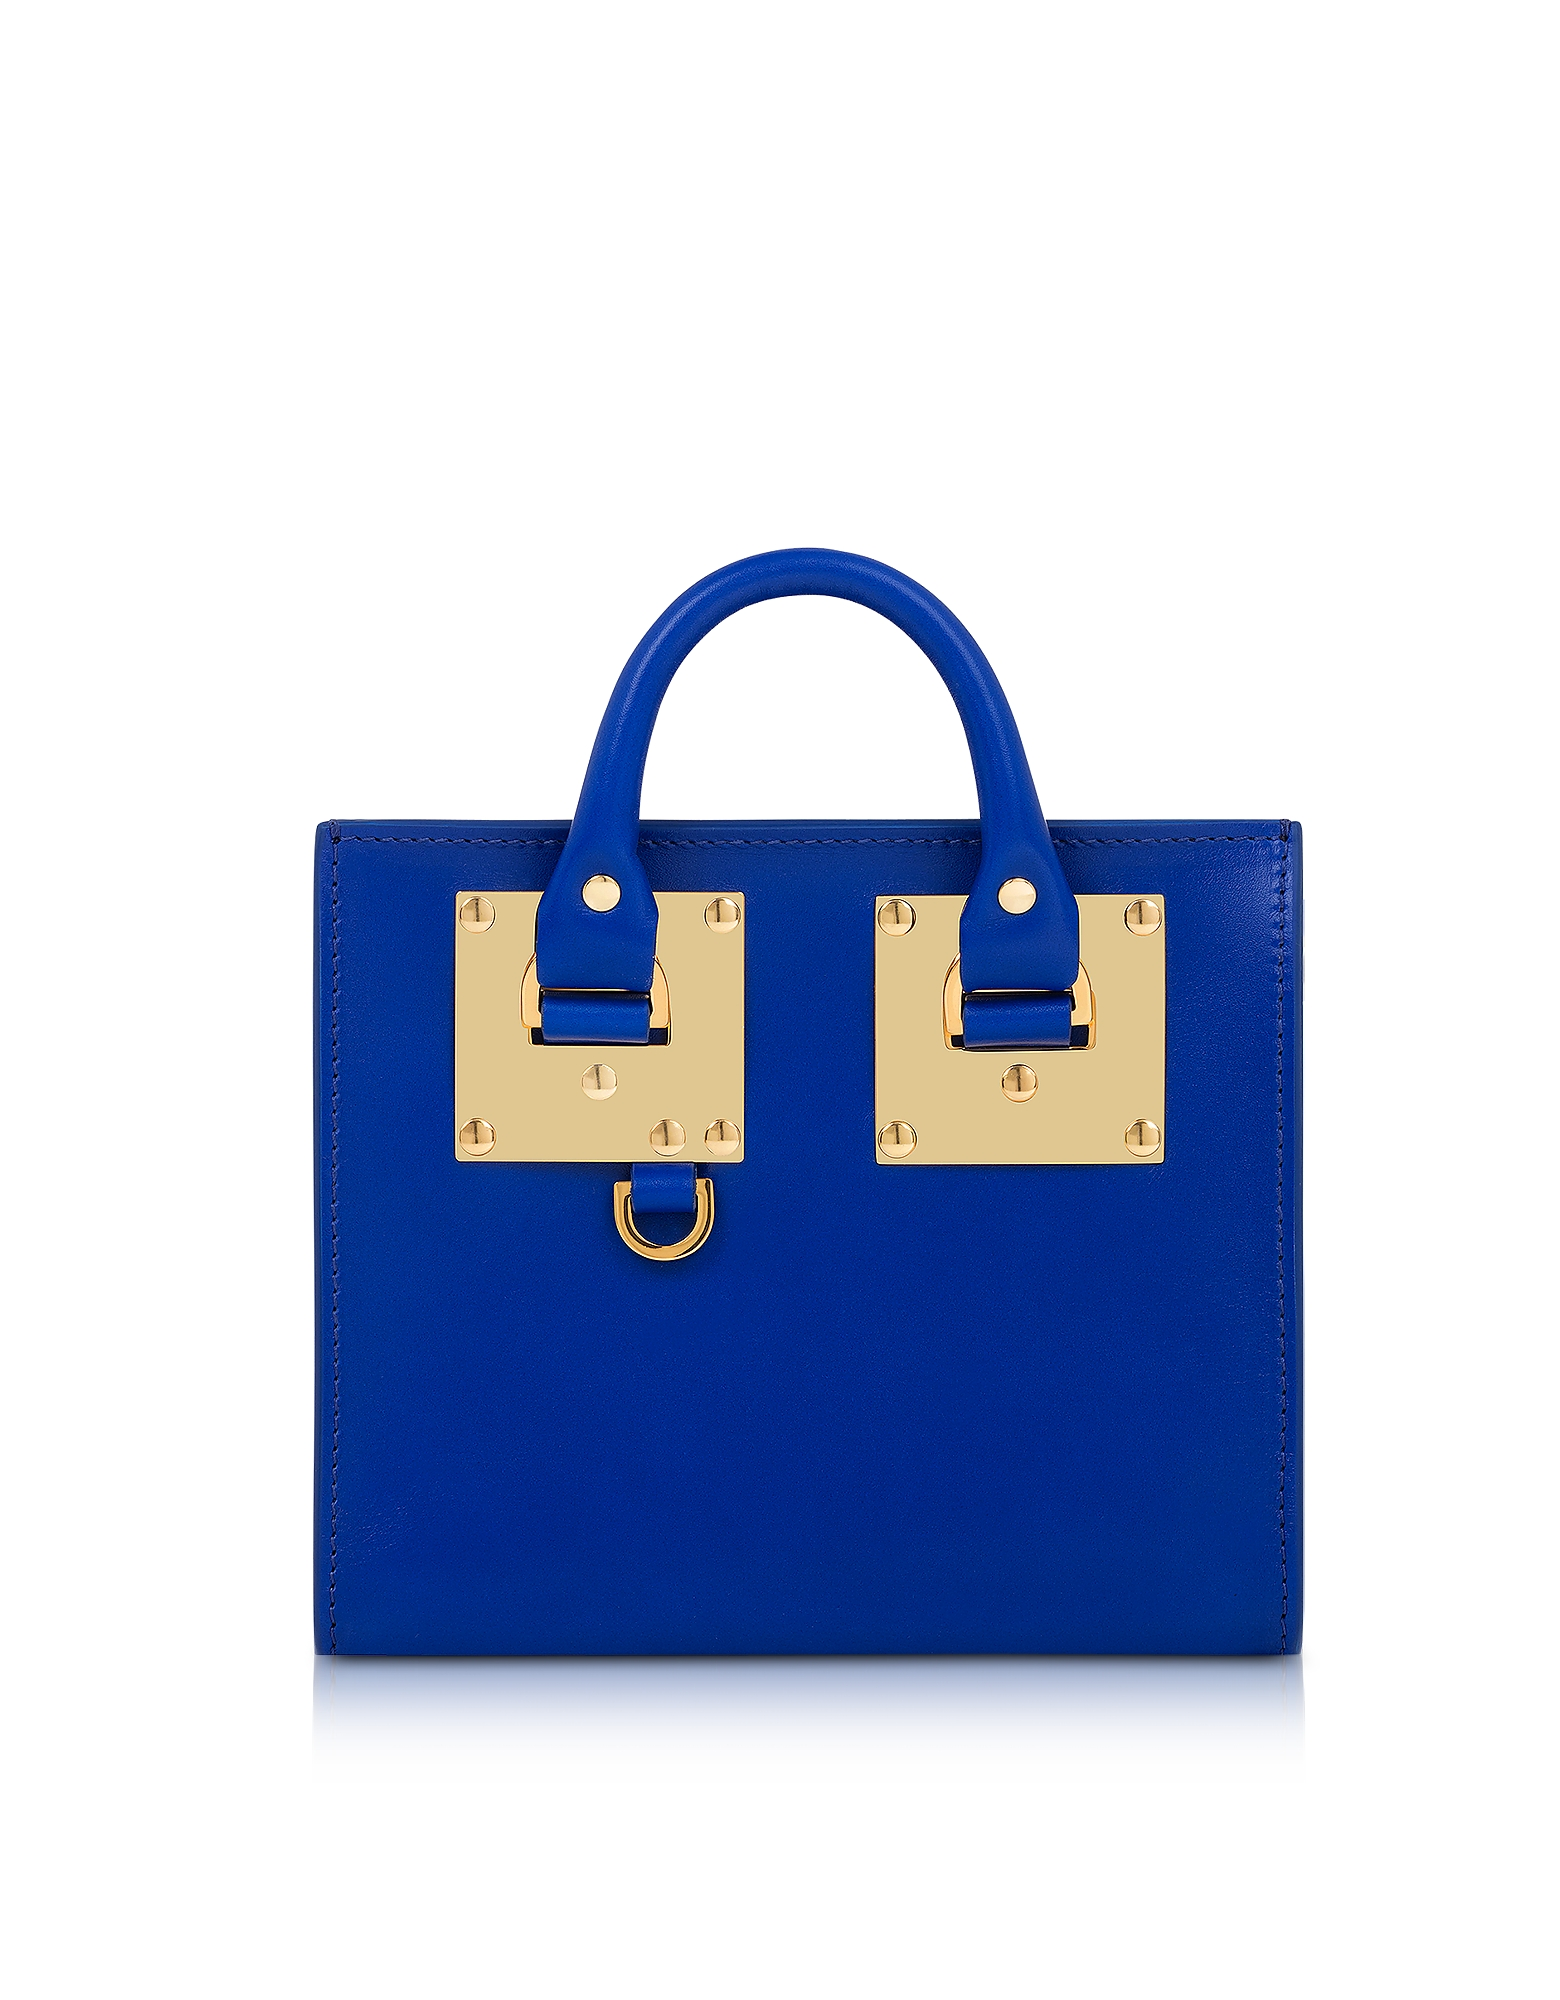 Sophie Hulme Handbags, Klein Blue Saddle Leather Albion Box Tote Bag